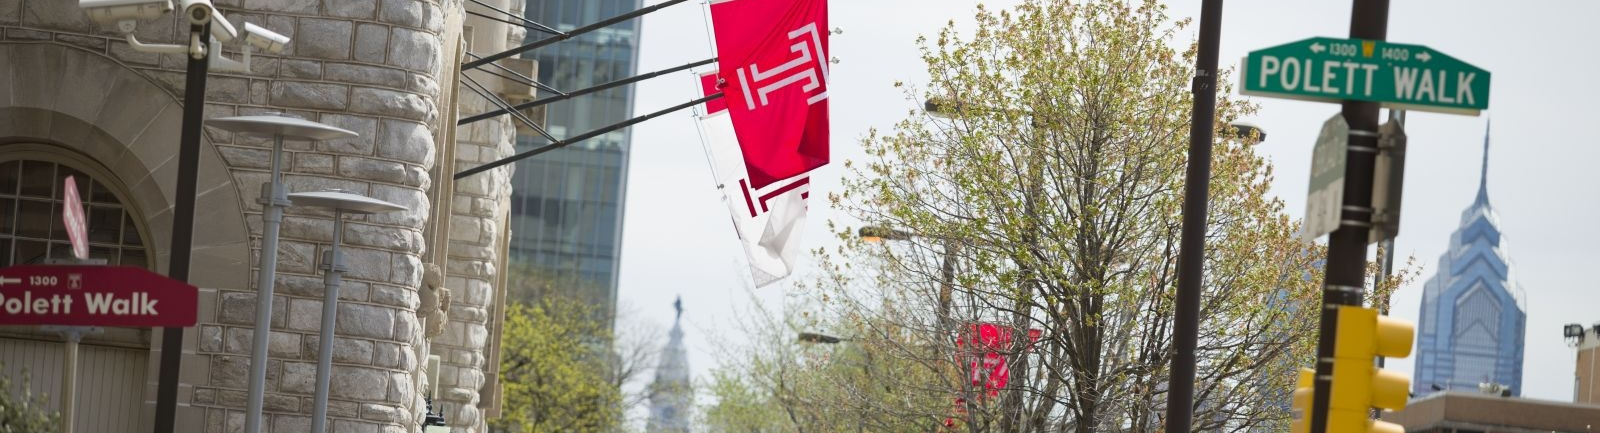 Temple University flag hanging from a building on Main Campus on Broad Street